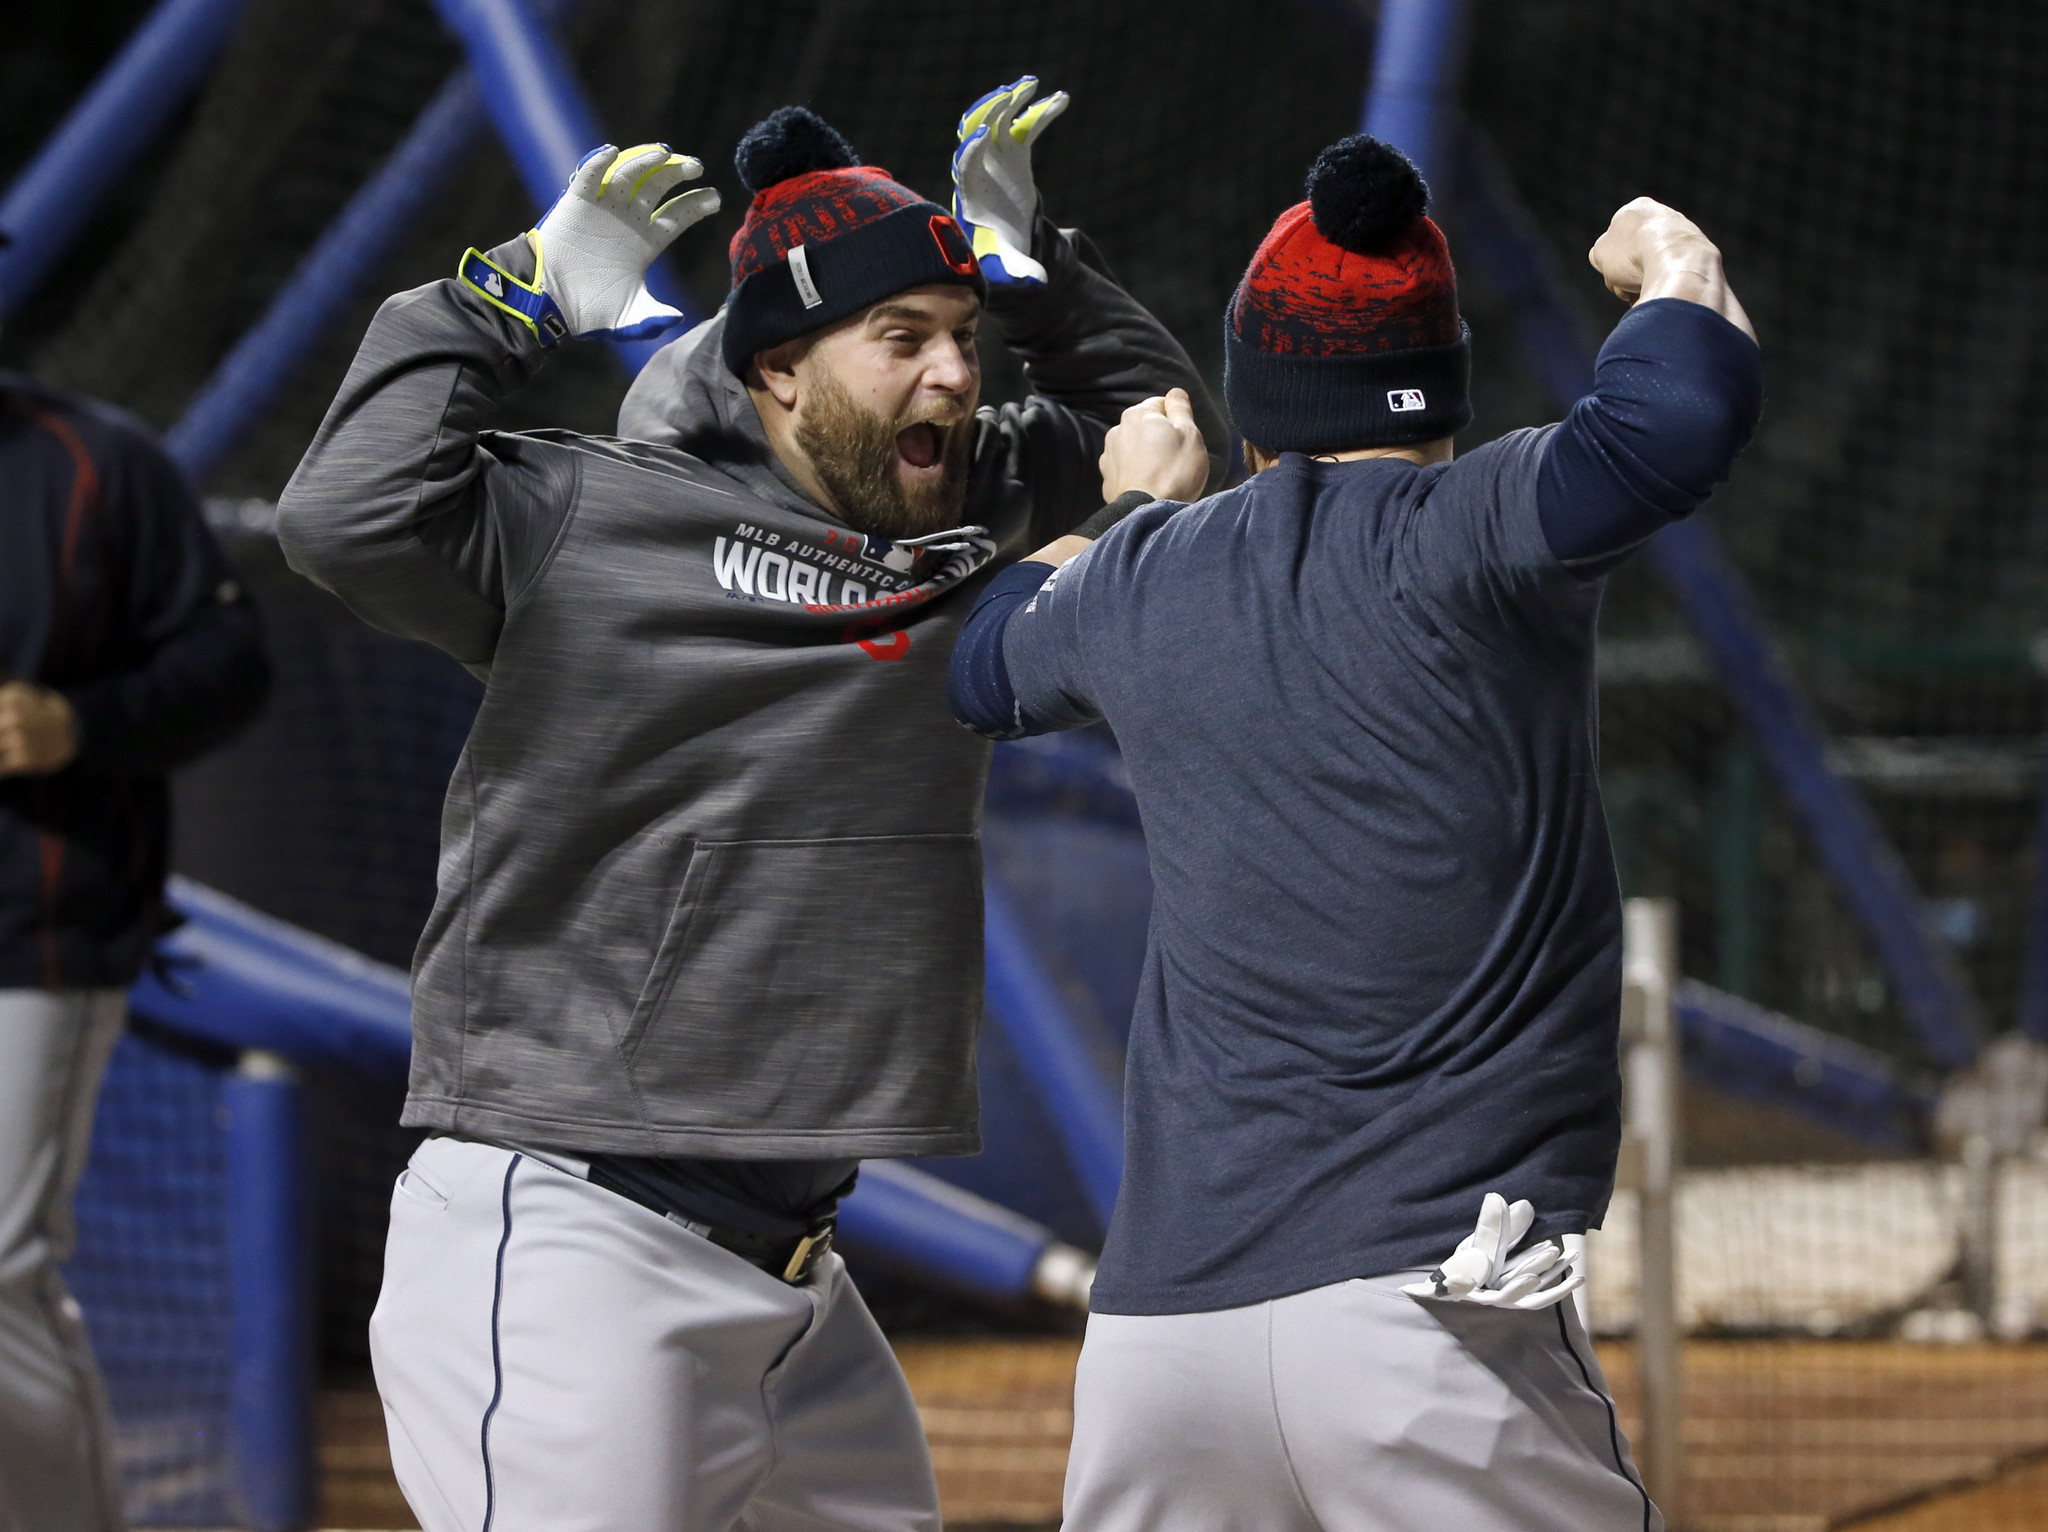 Ct-mike-napoli-world-series-party-spt-1028-20161027